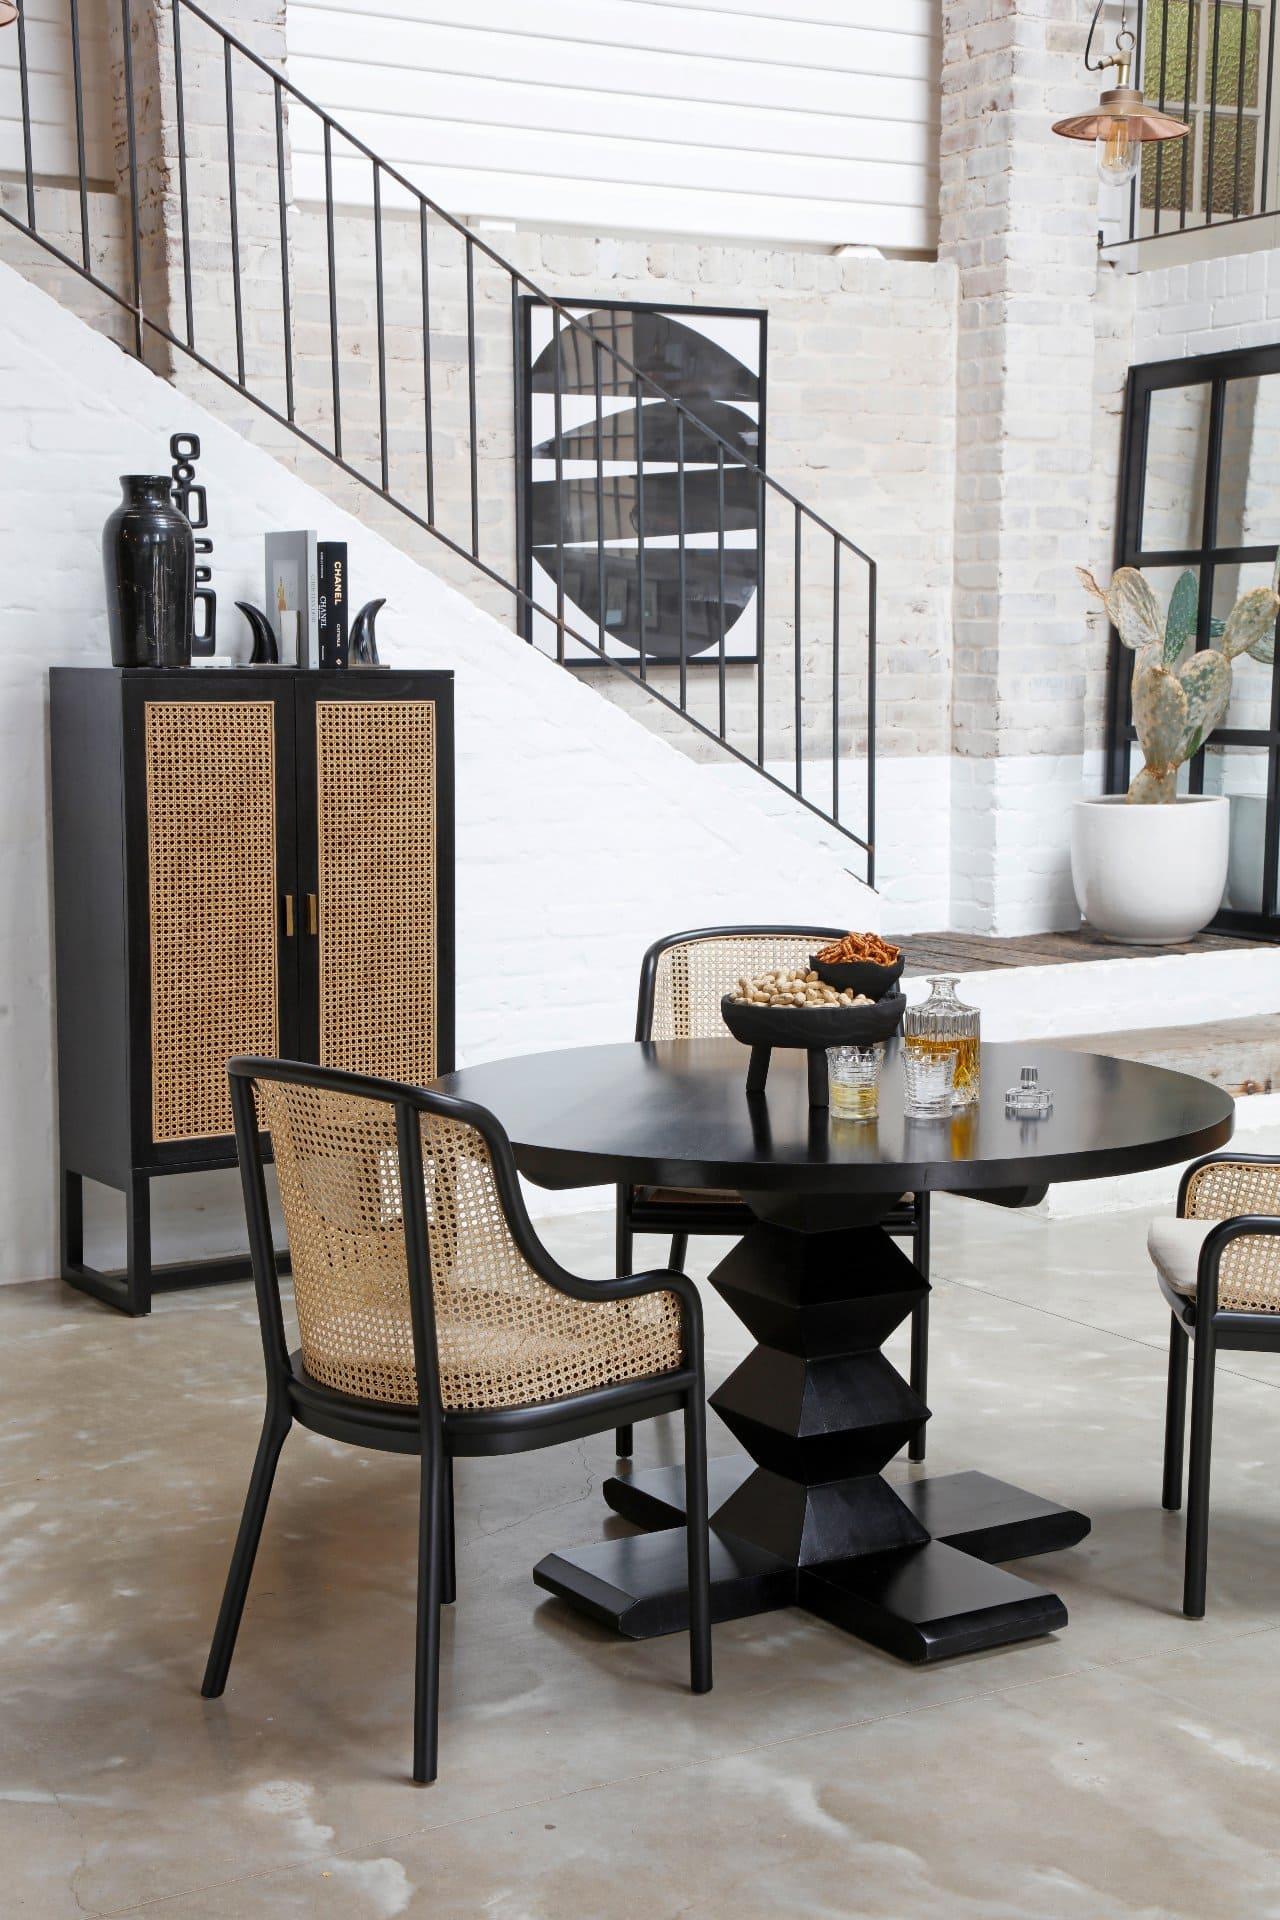 oz design dining room furniture with rattan storage cabinet and round black dining table